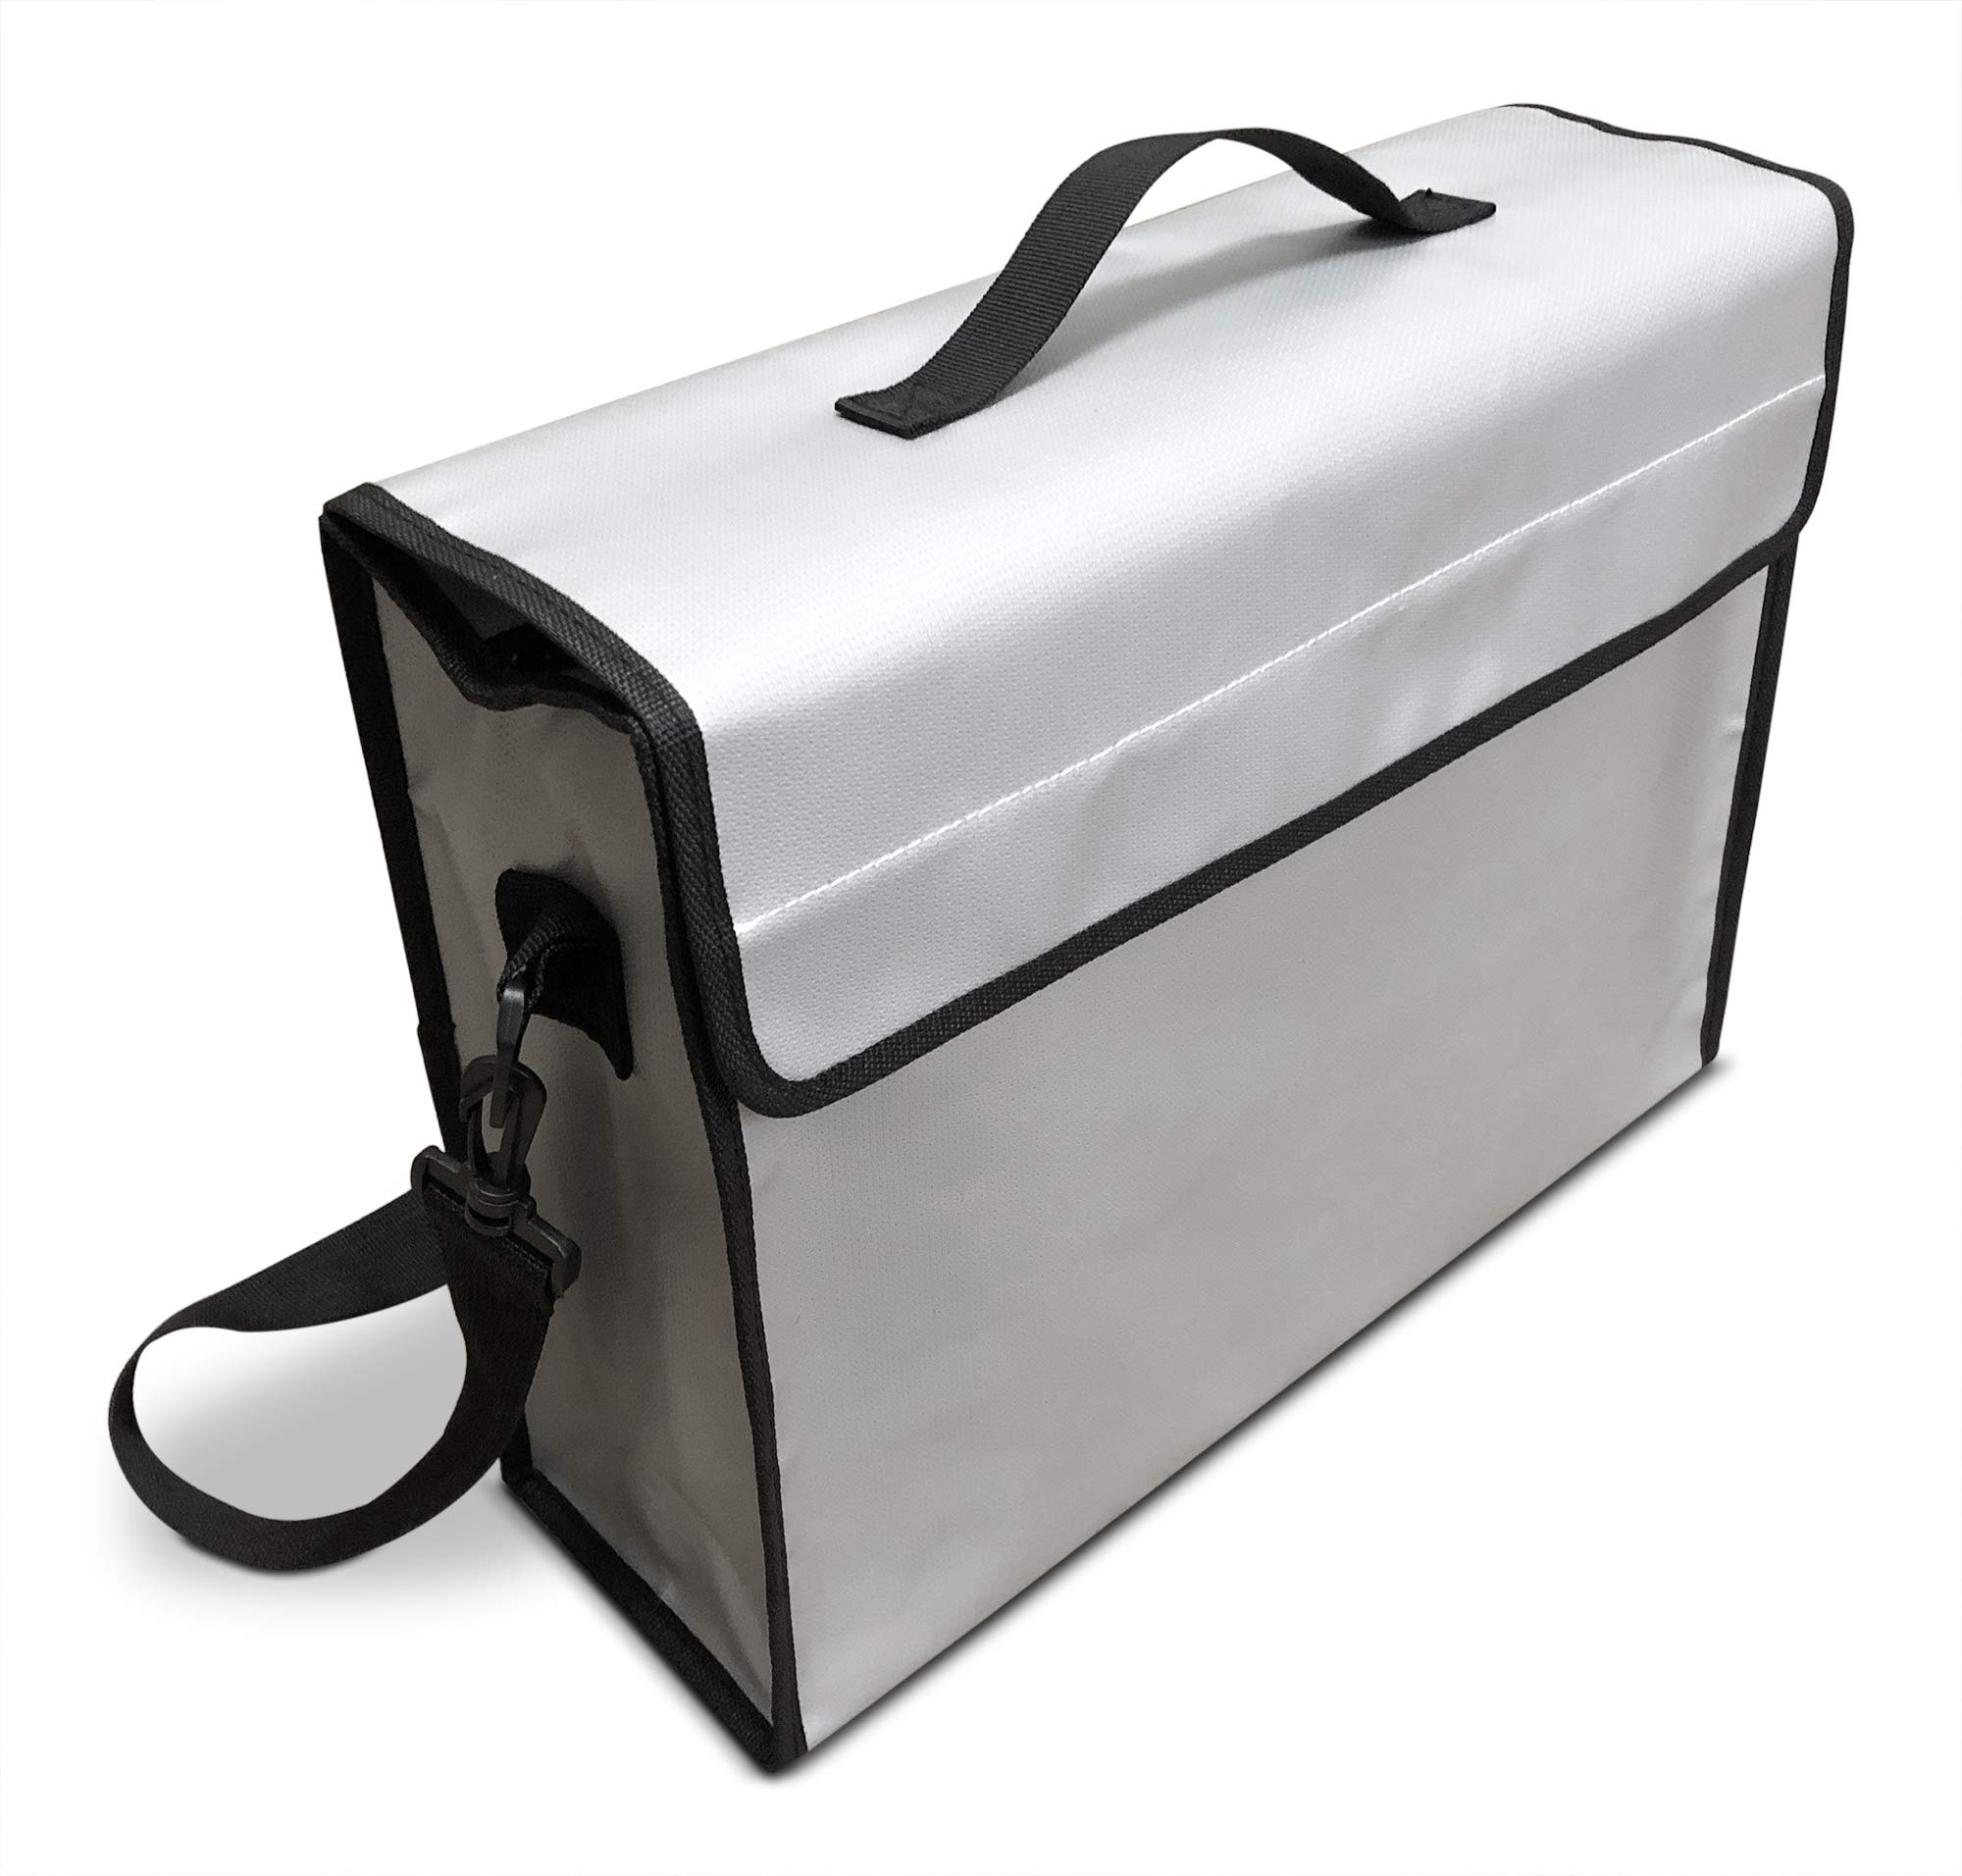 """Large (15""""x12""""x5"""" Inch) Fireproof Bag 2000°F for Documents and Money by SlayMonday - Non Itchy, Strong Double Layer Heat Protection - XL Fire and Water Resistant Case to Protect Jewelry, Cash, Files"""